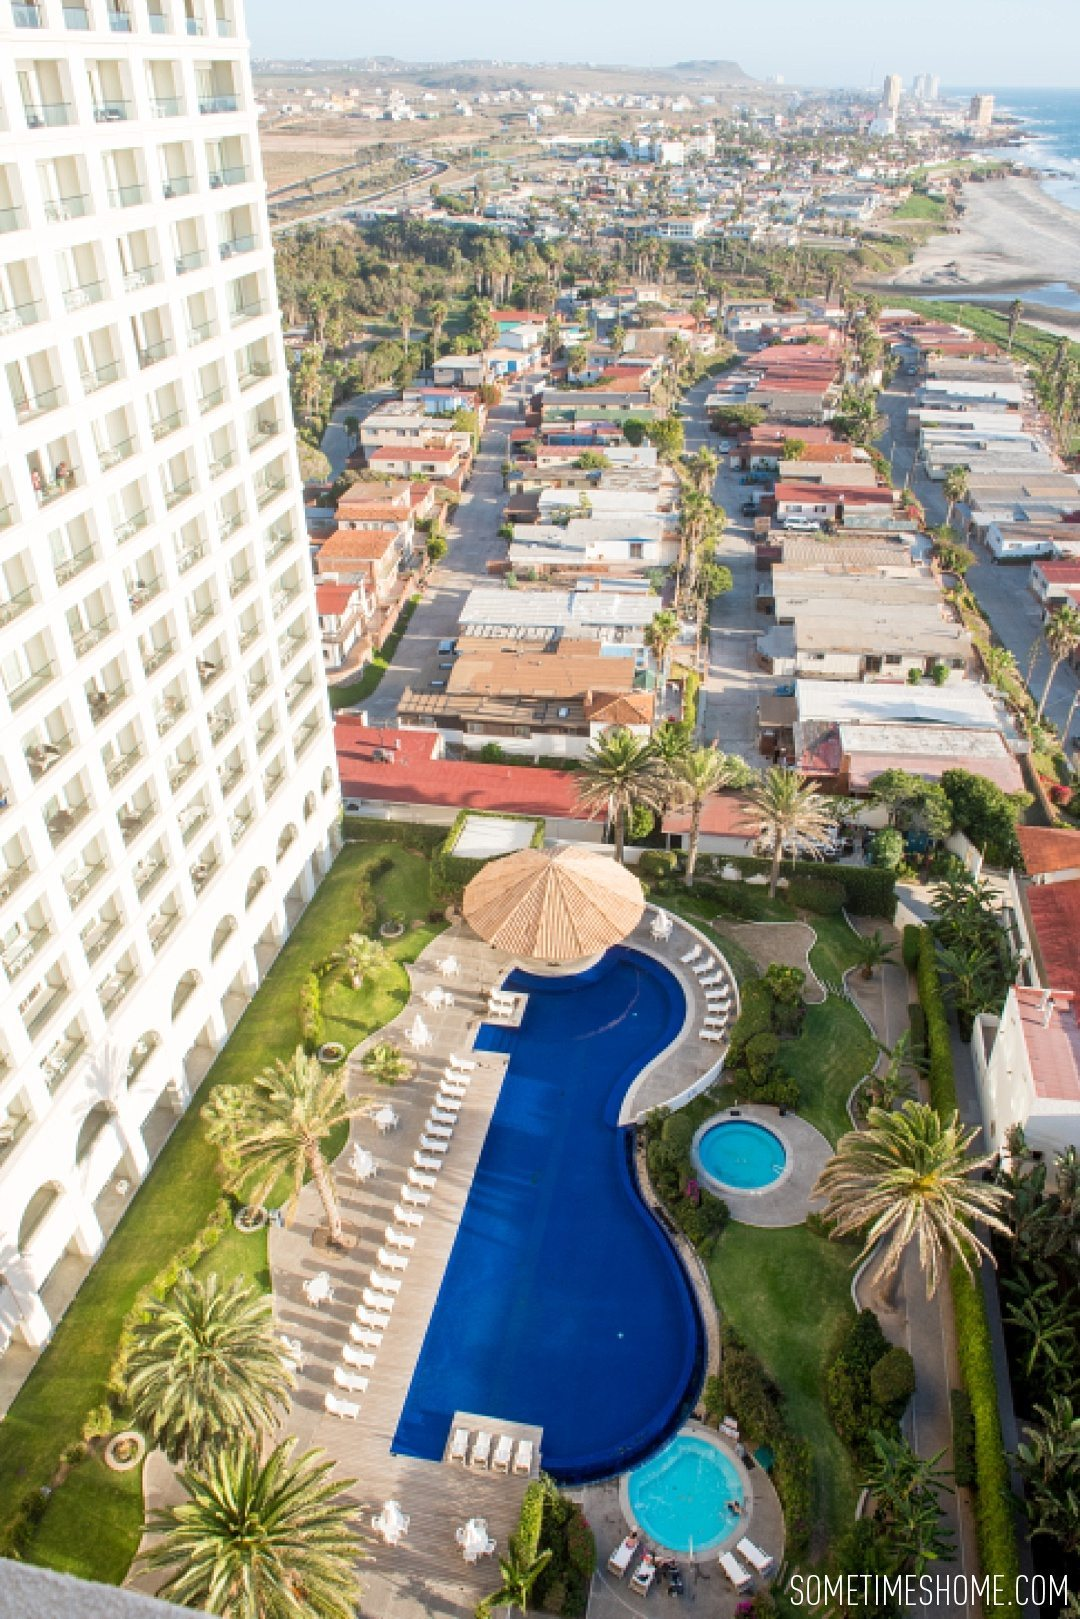 Photo spots at Rosarito Beach Hotel by travel blog Sometimes Home.